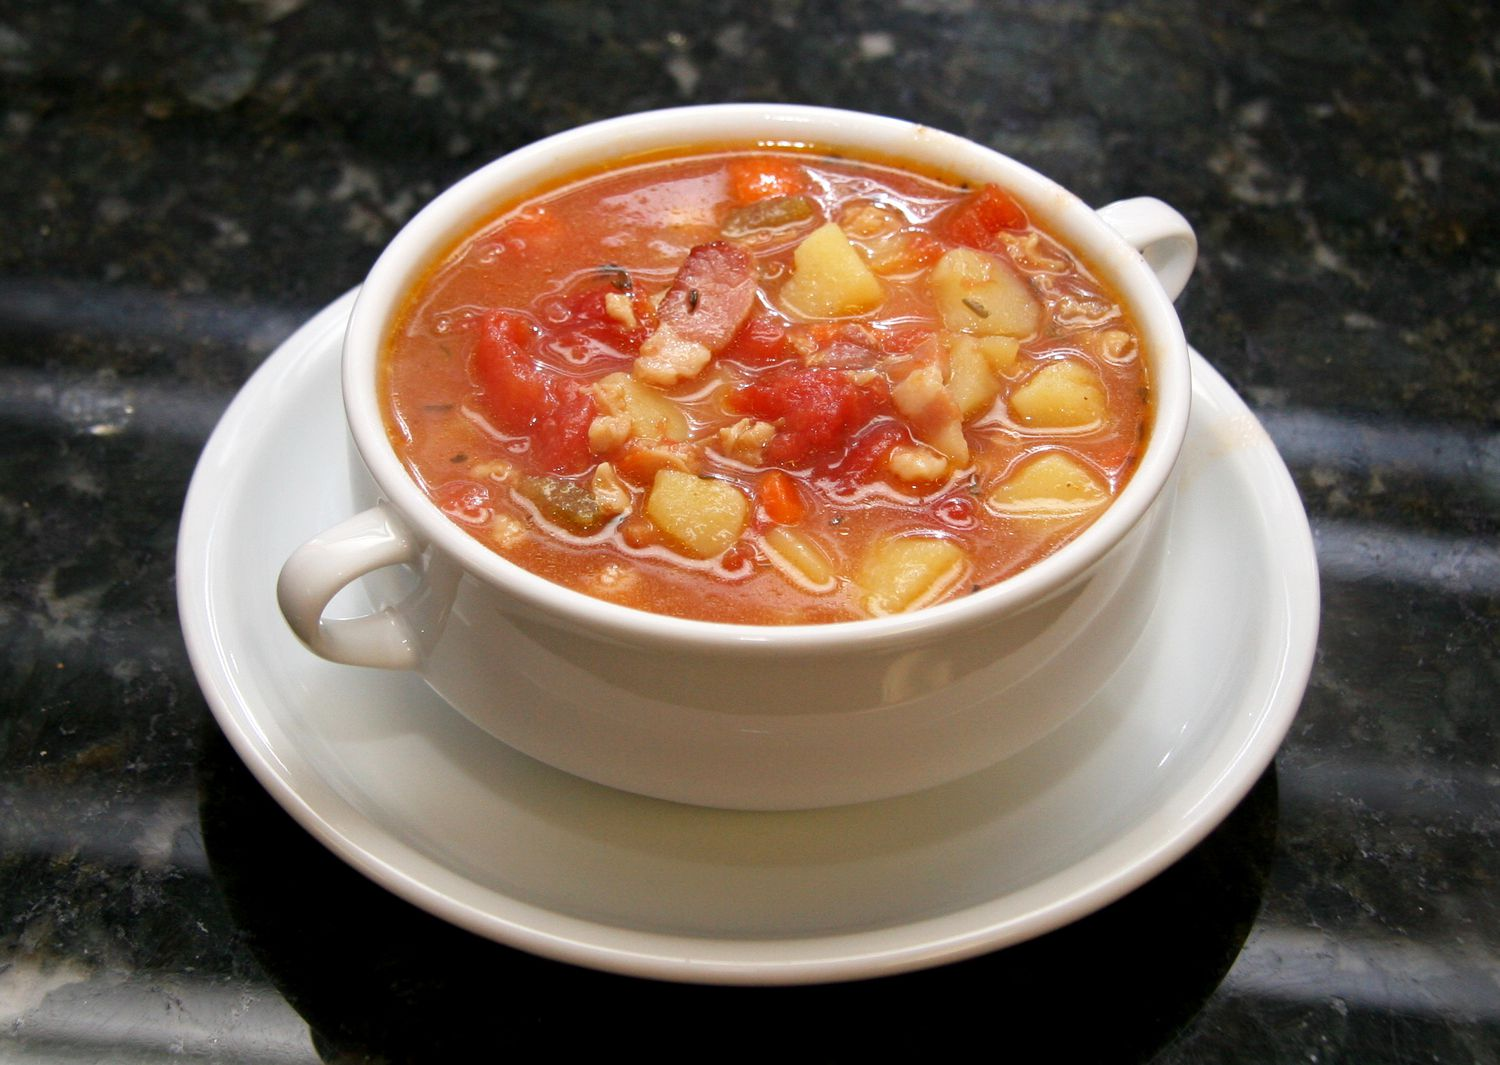 Slow cooker manhattan style clam chowder recipe for Crockpot fish chowder